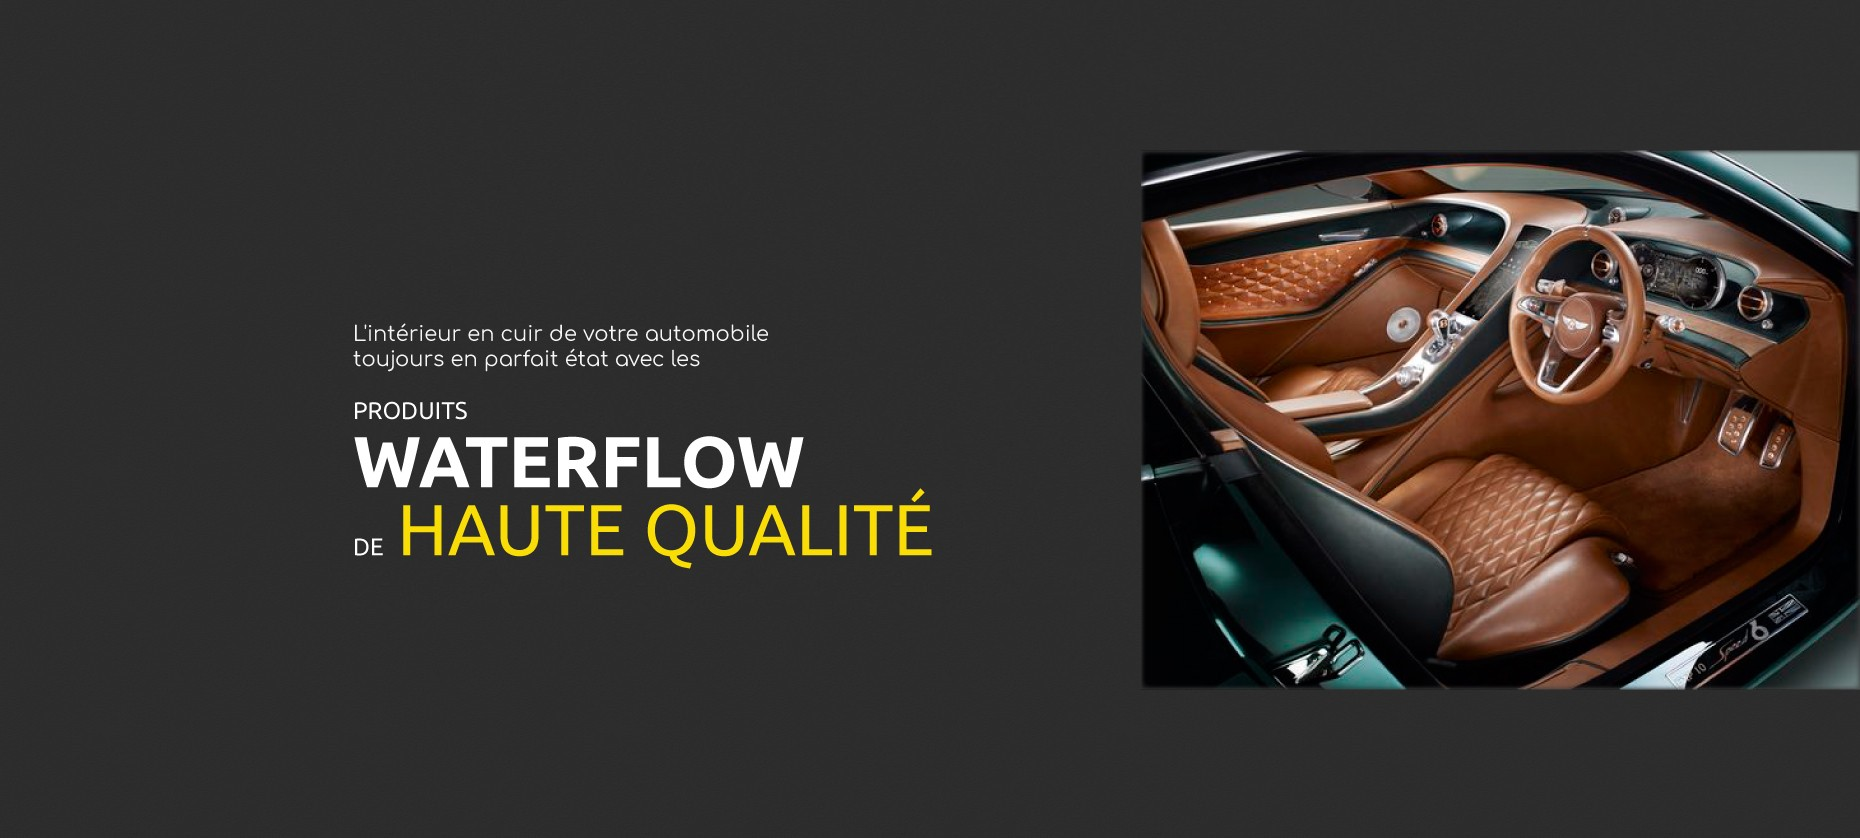 High quality products - Waterflow